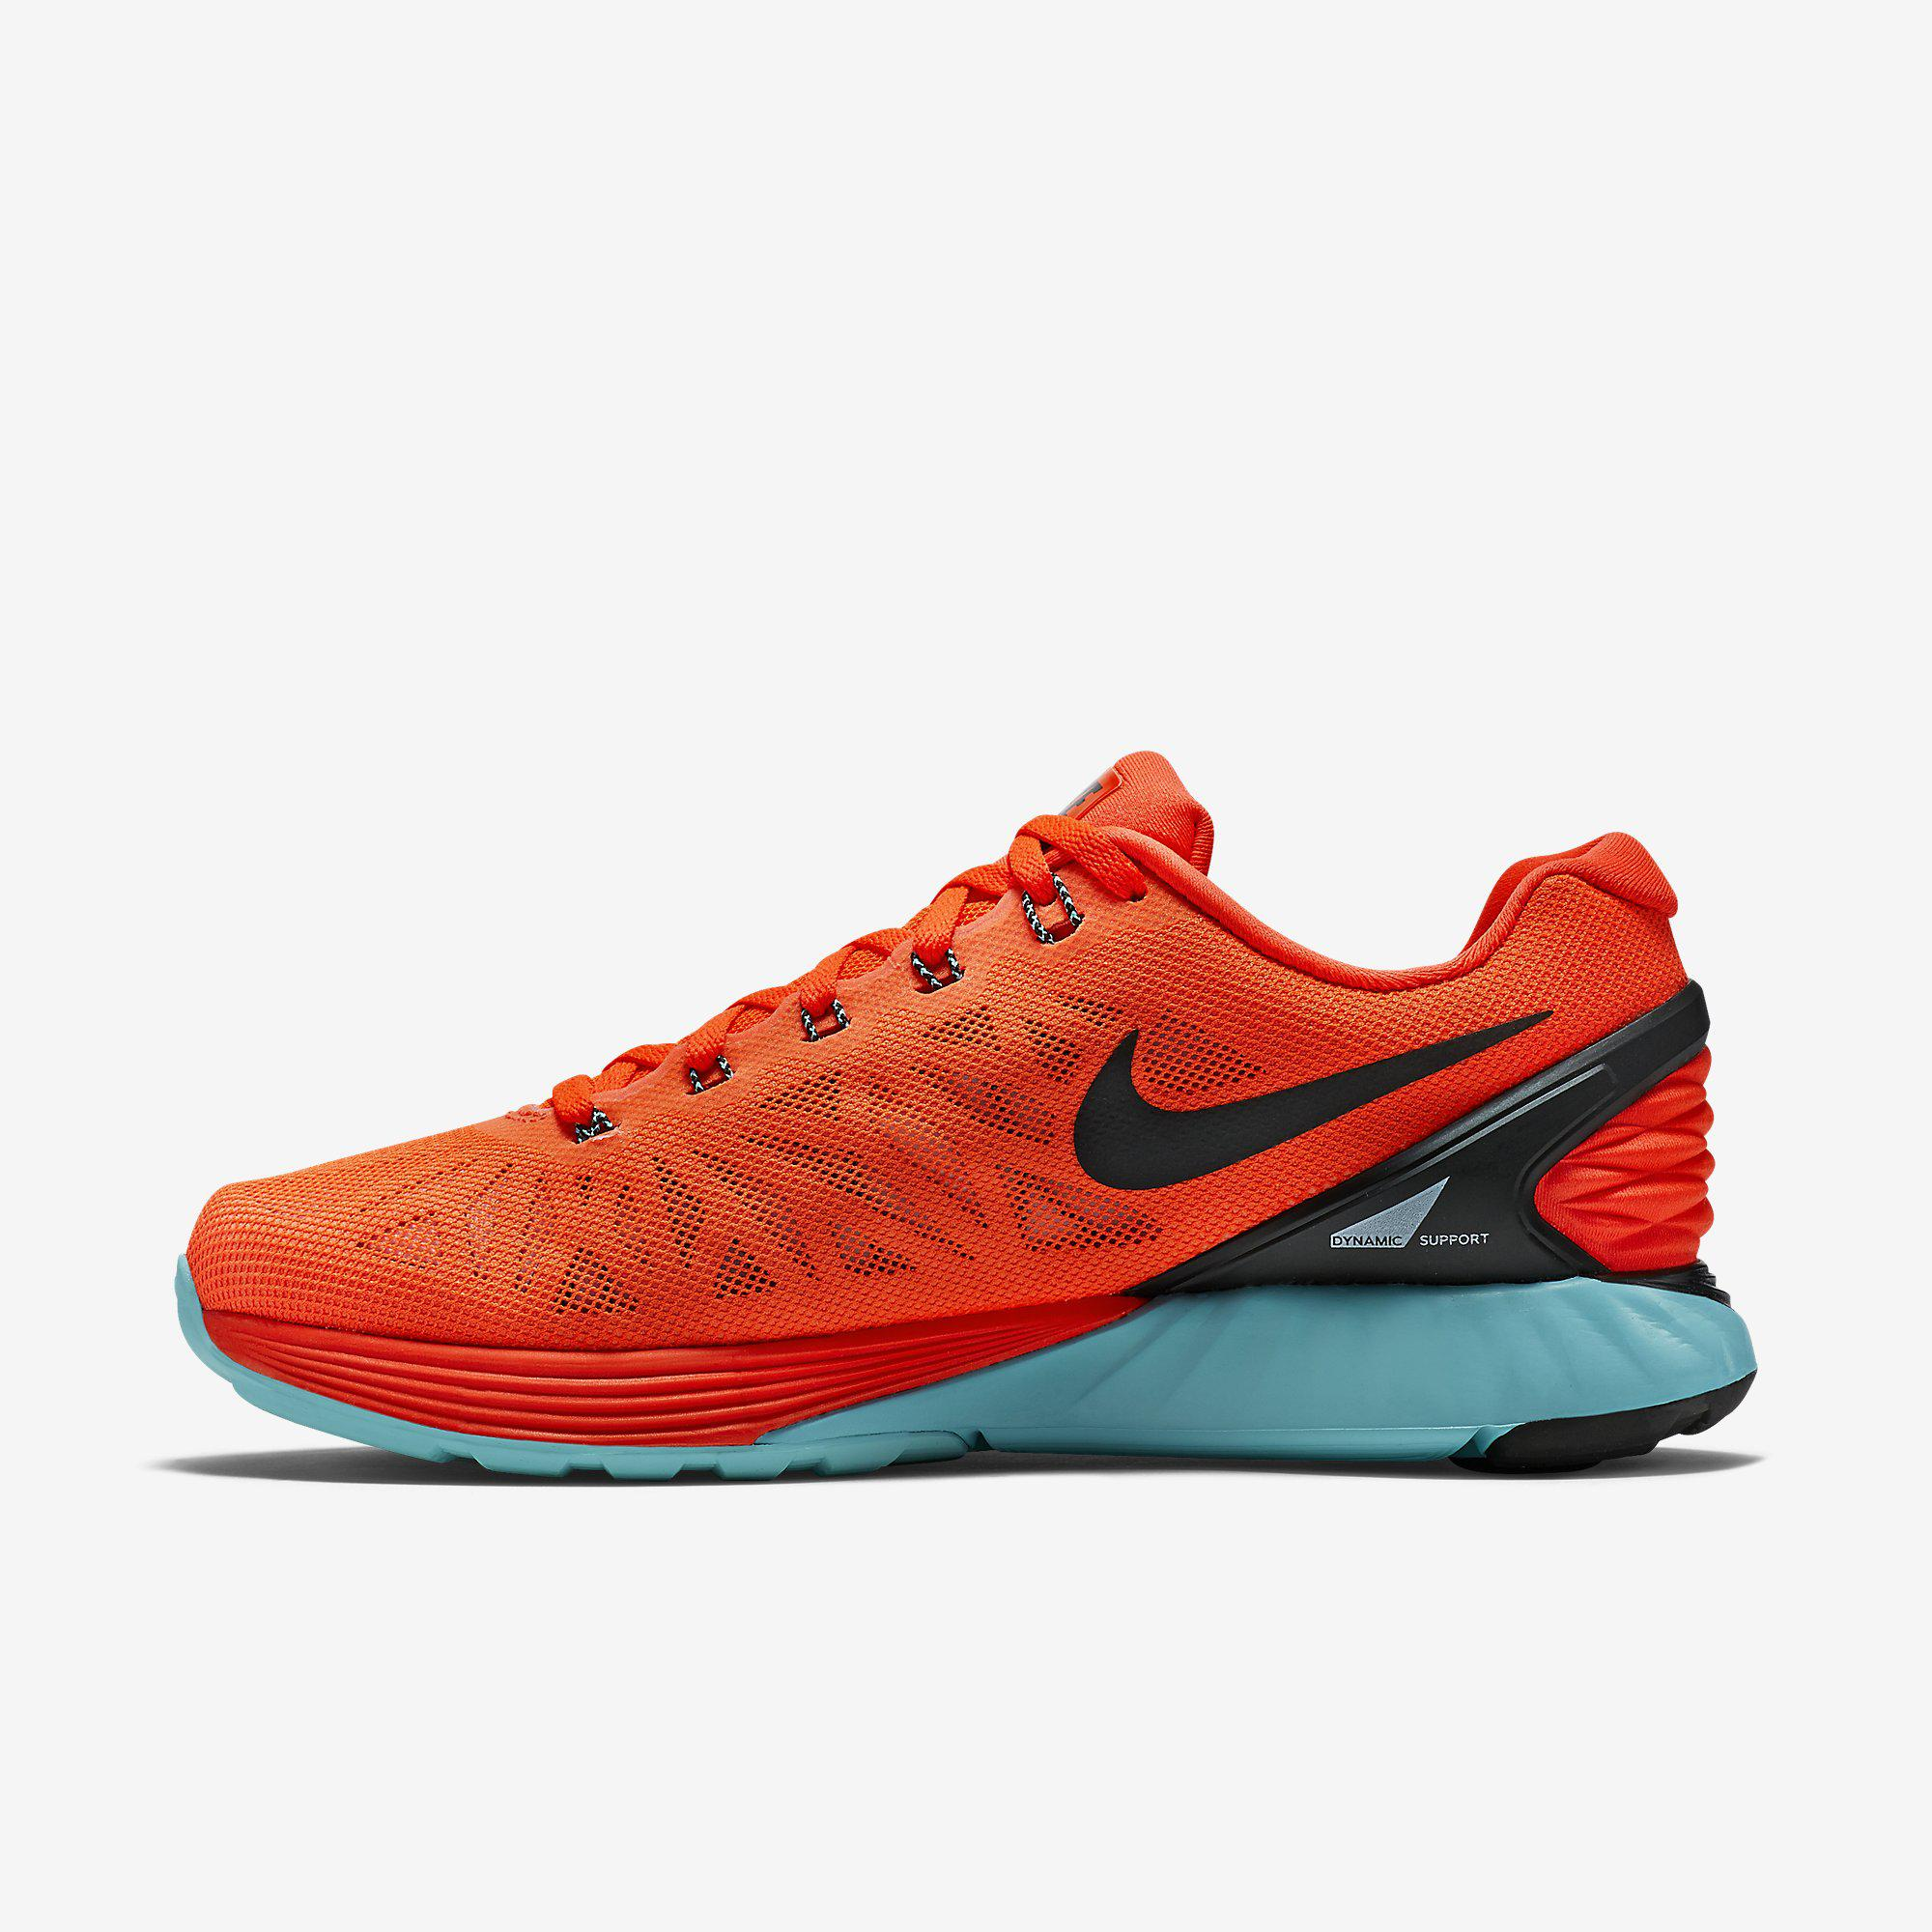 new style 67cee a13df ... low price nike lunar glide running shoe 64934 d0e8a